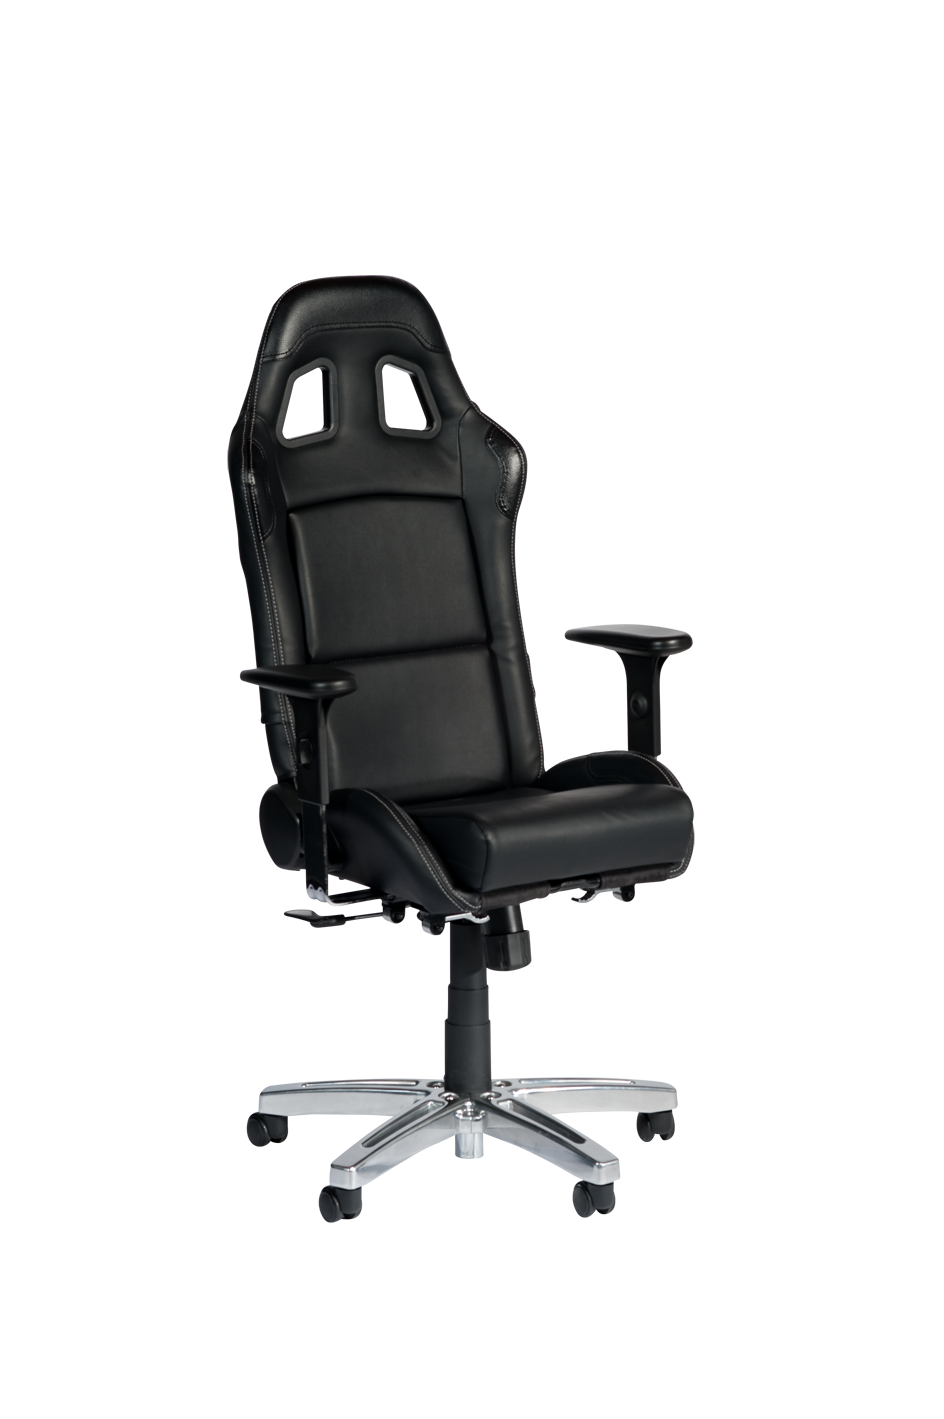 uploads chair chair PNG6881 3